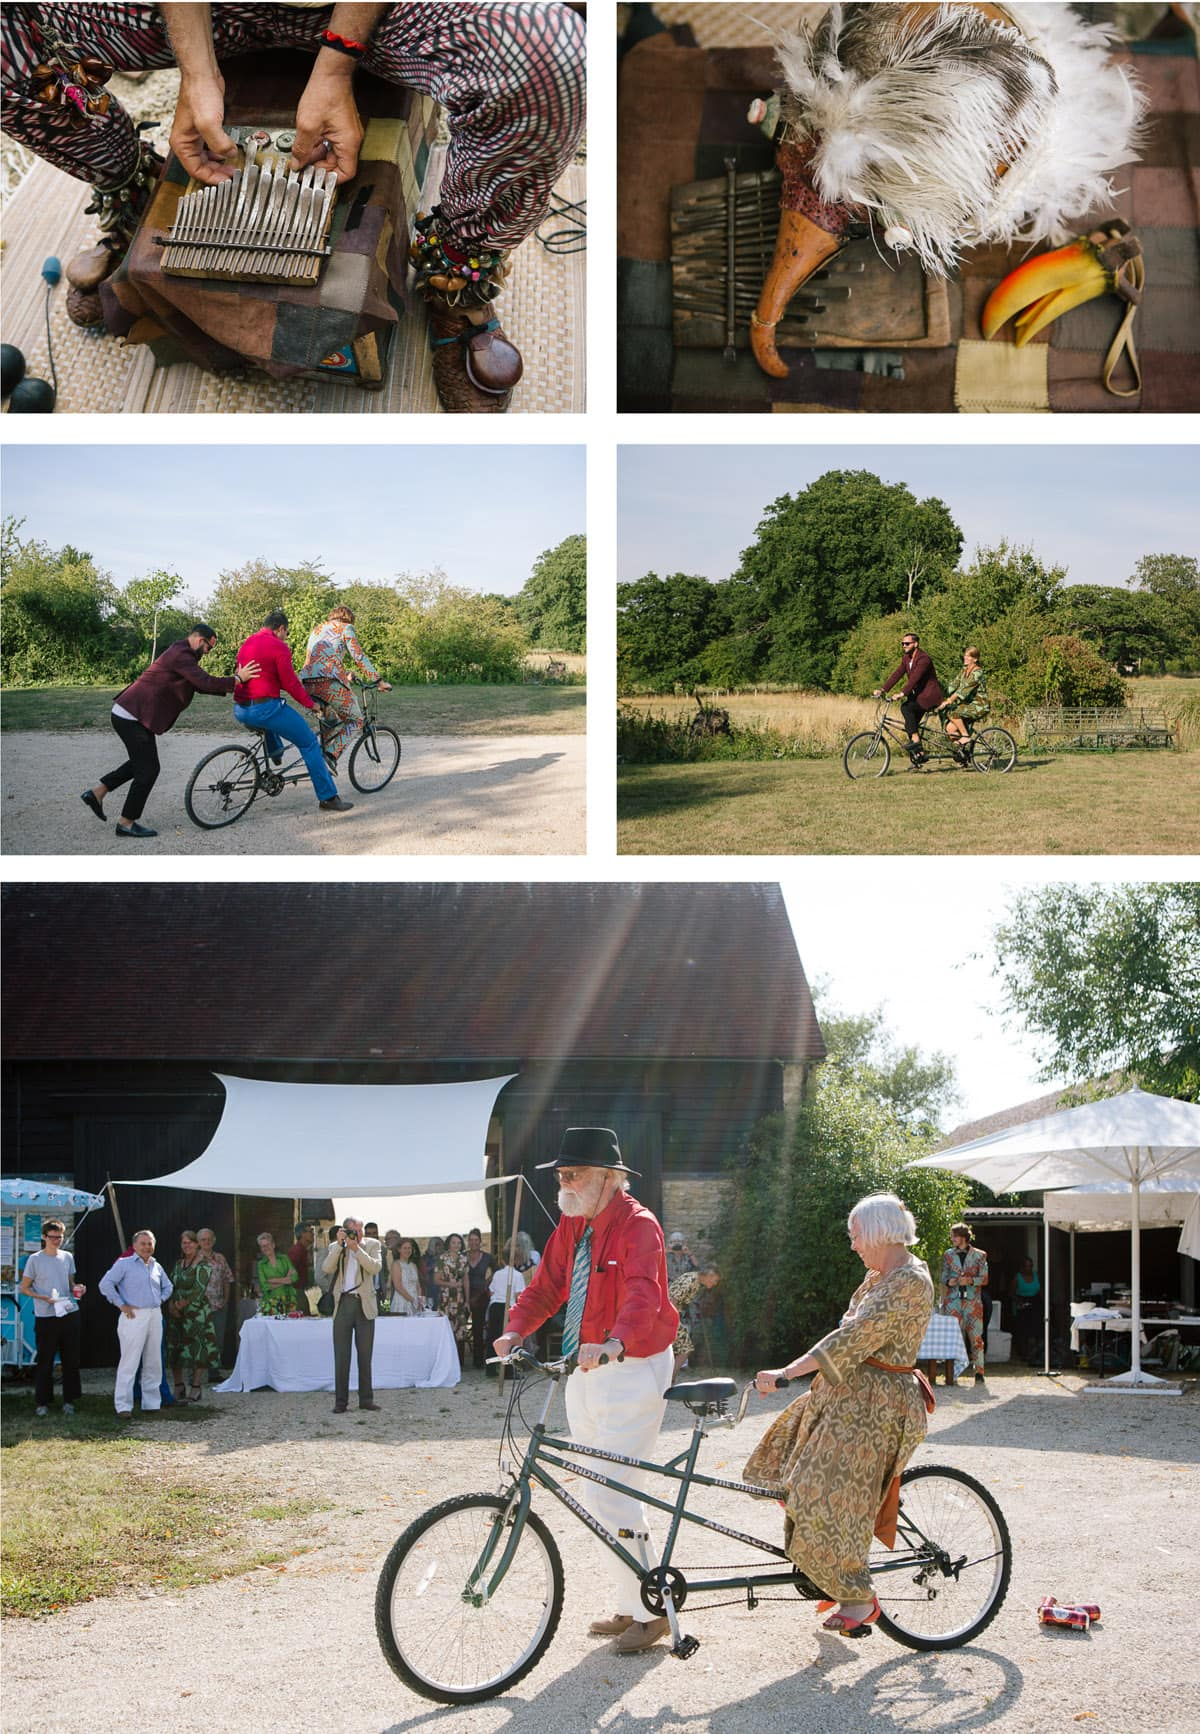 Collage of images of the Birdman playing and wedding guests larking about on a tandem